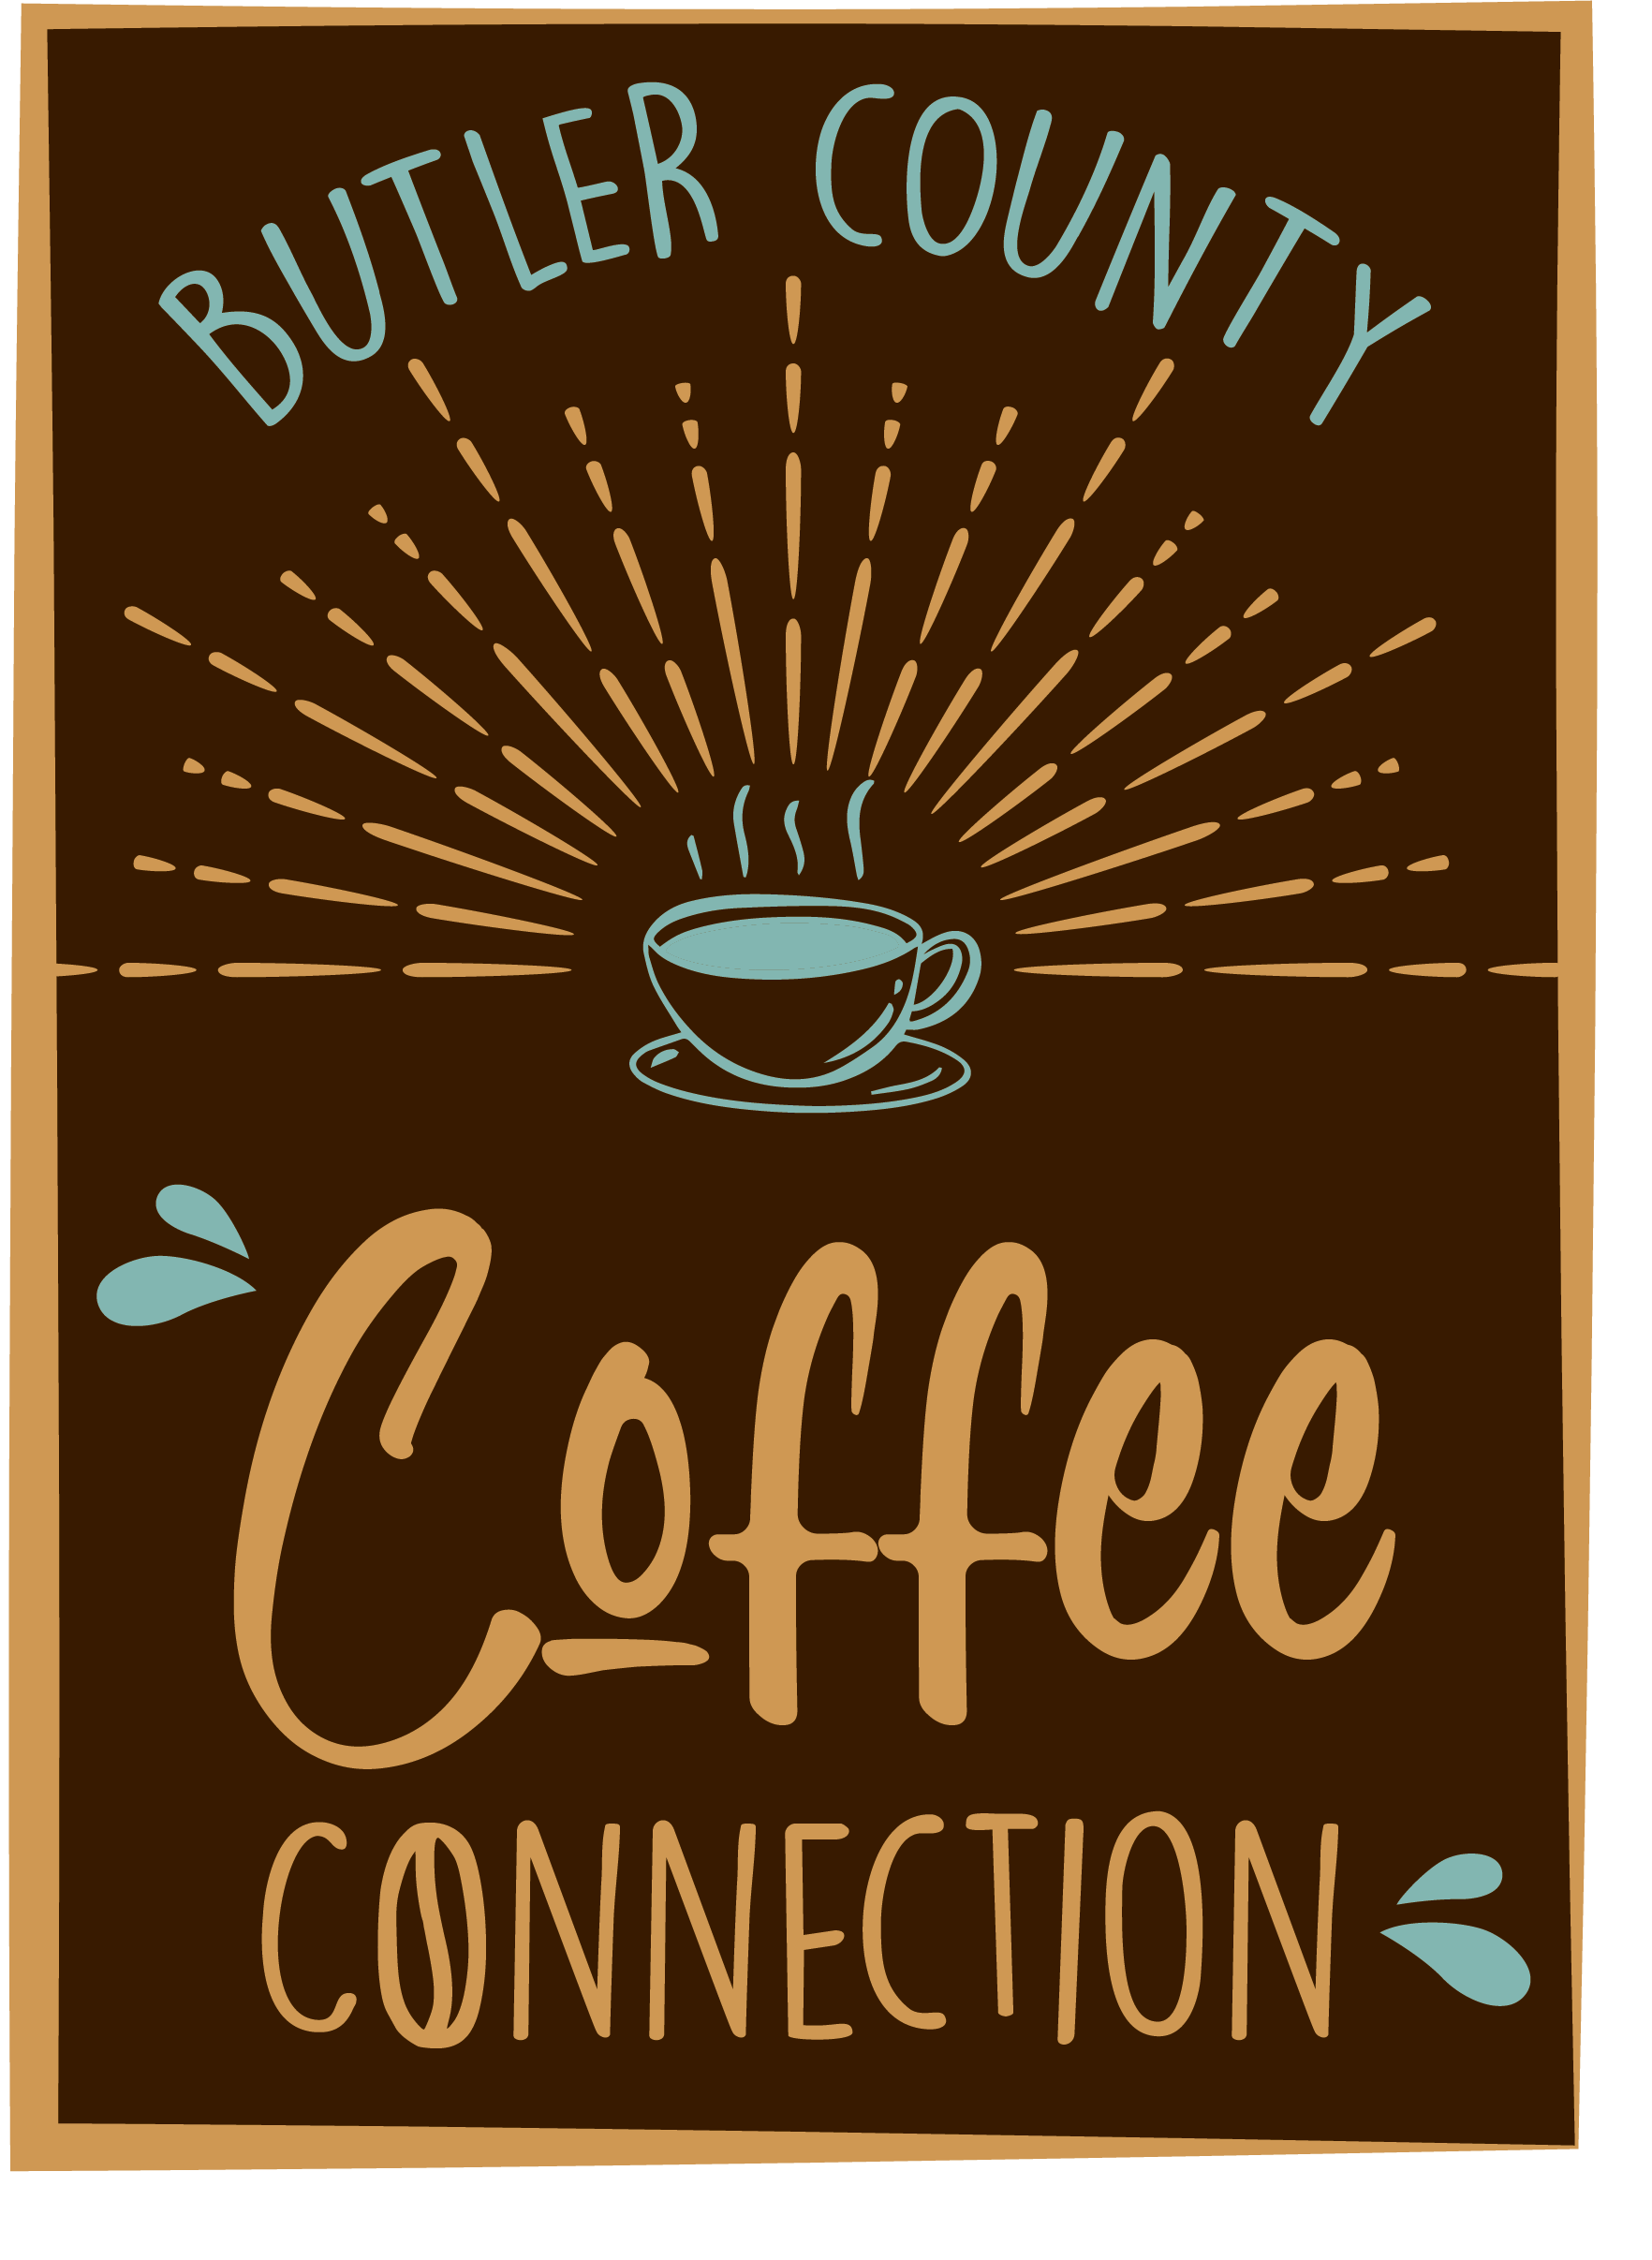 Butler County Coffee Connection